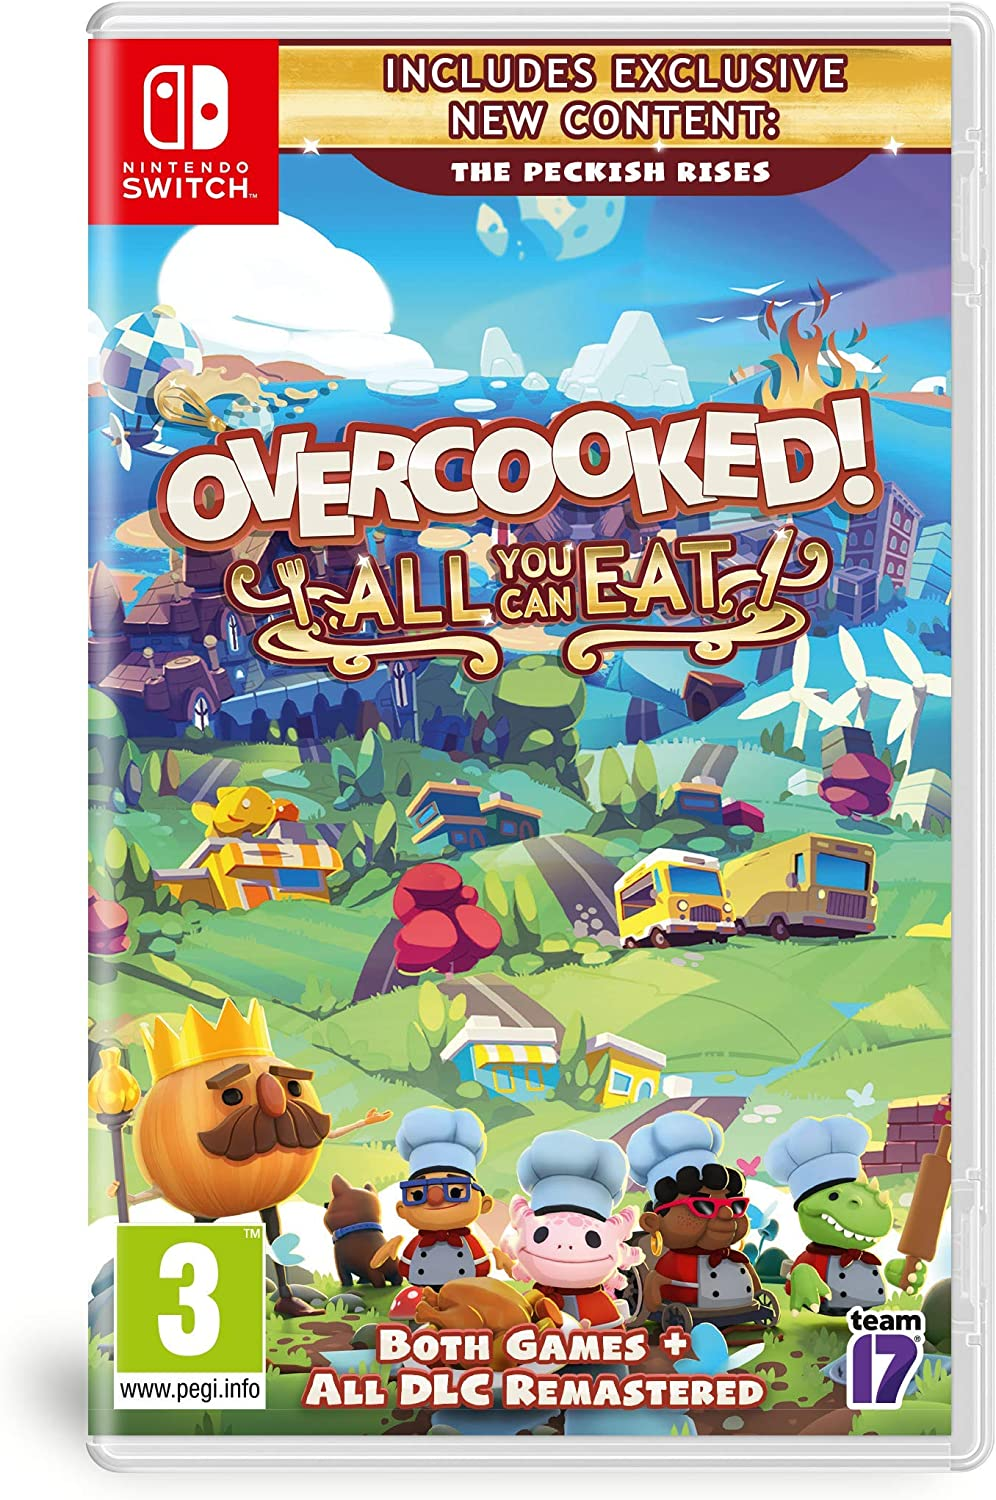 Nsw Overcooked: All You Can Eat